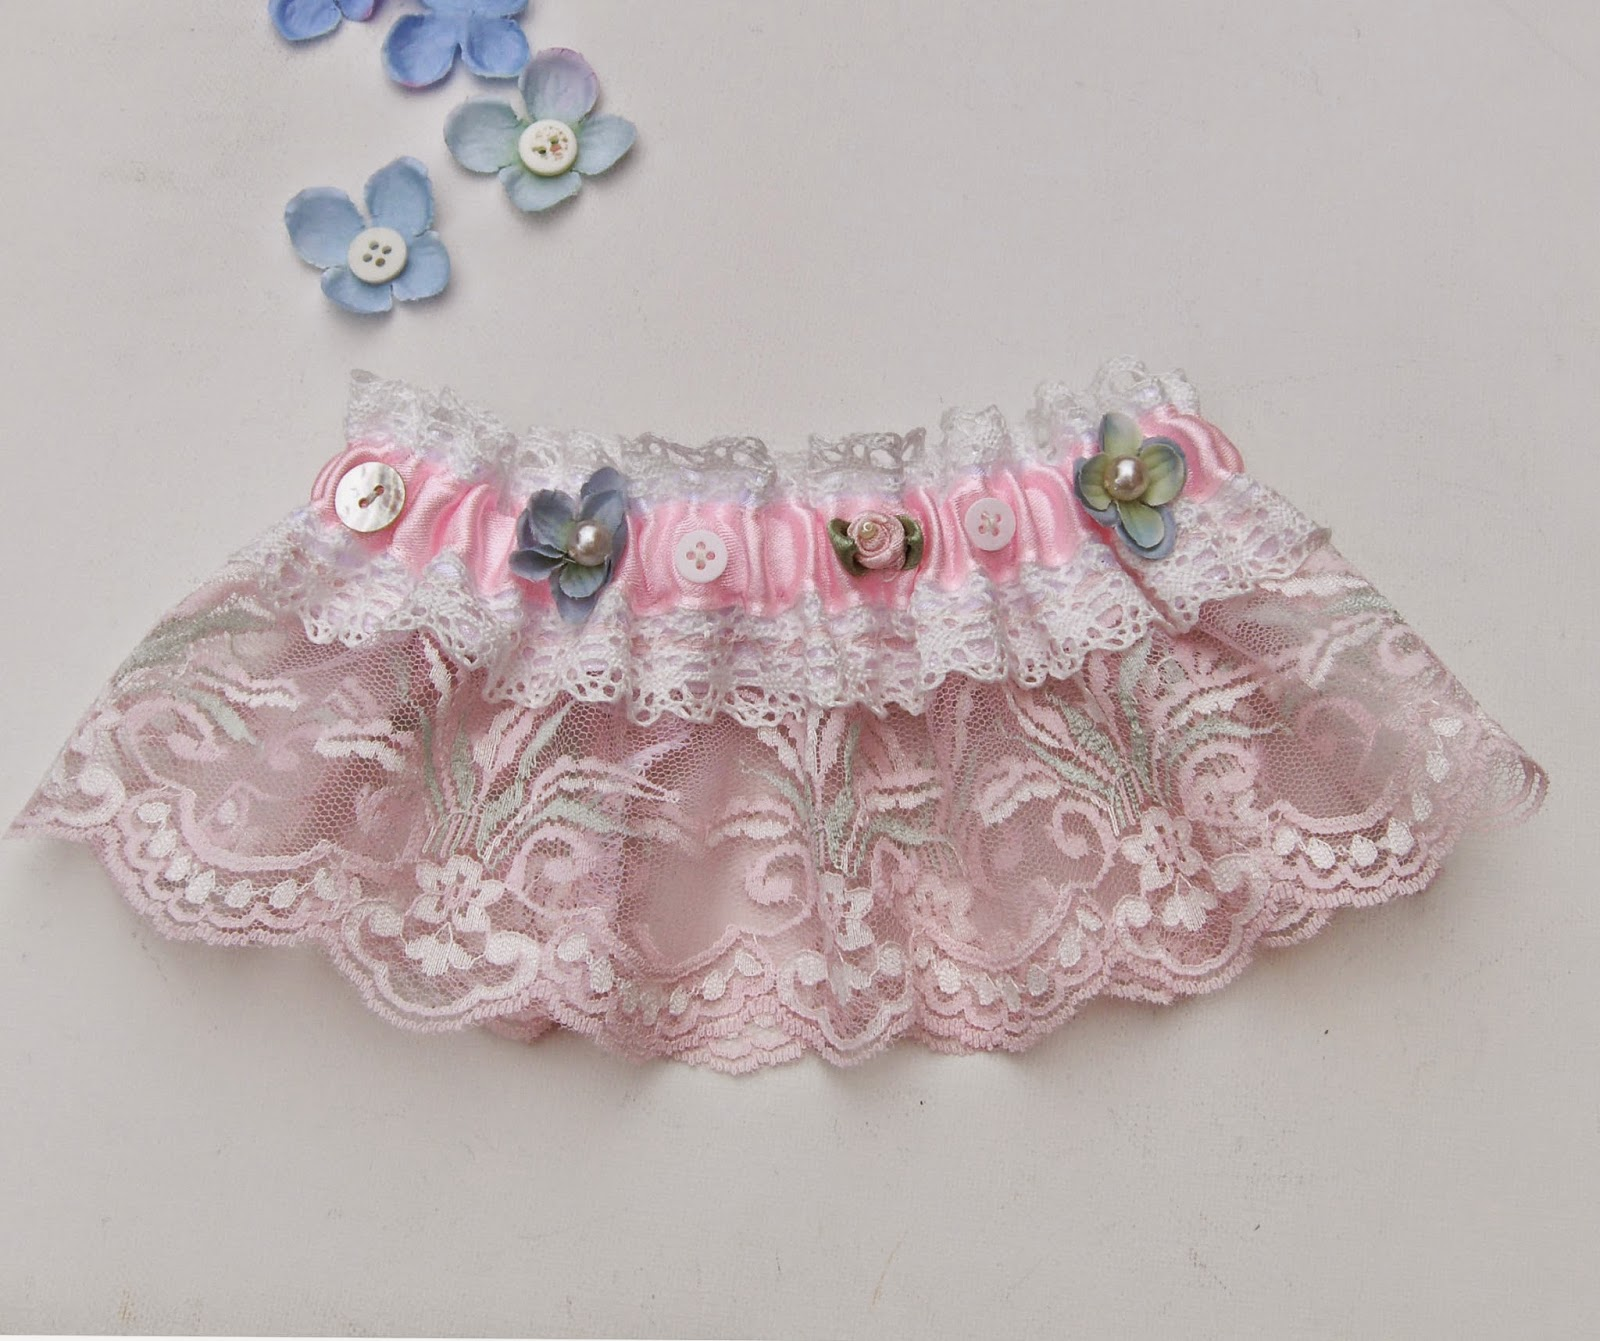 https://www.etsy.com/uk/listing/204103459/shabby-chic-wedding-bridal-garter-pink?ref=related-2